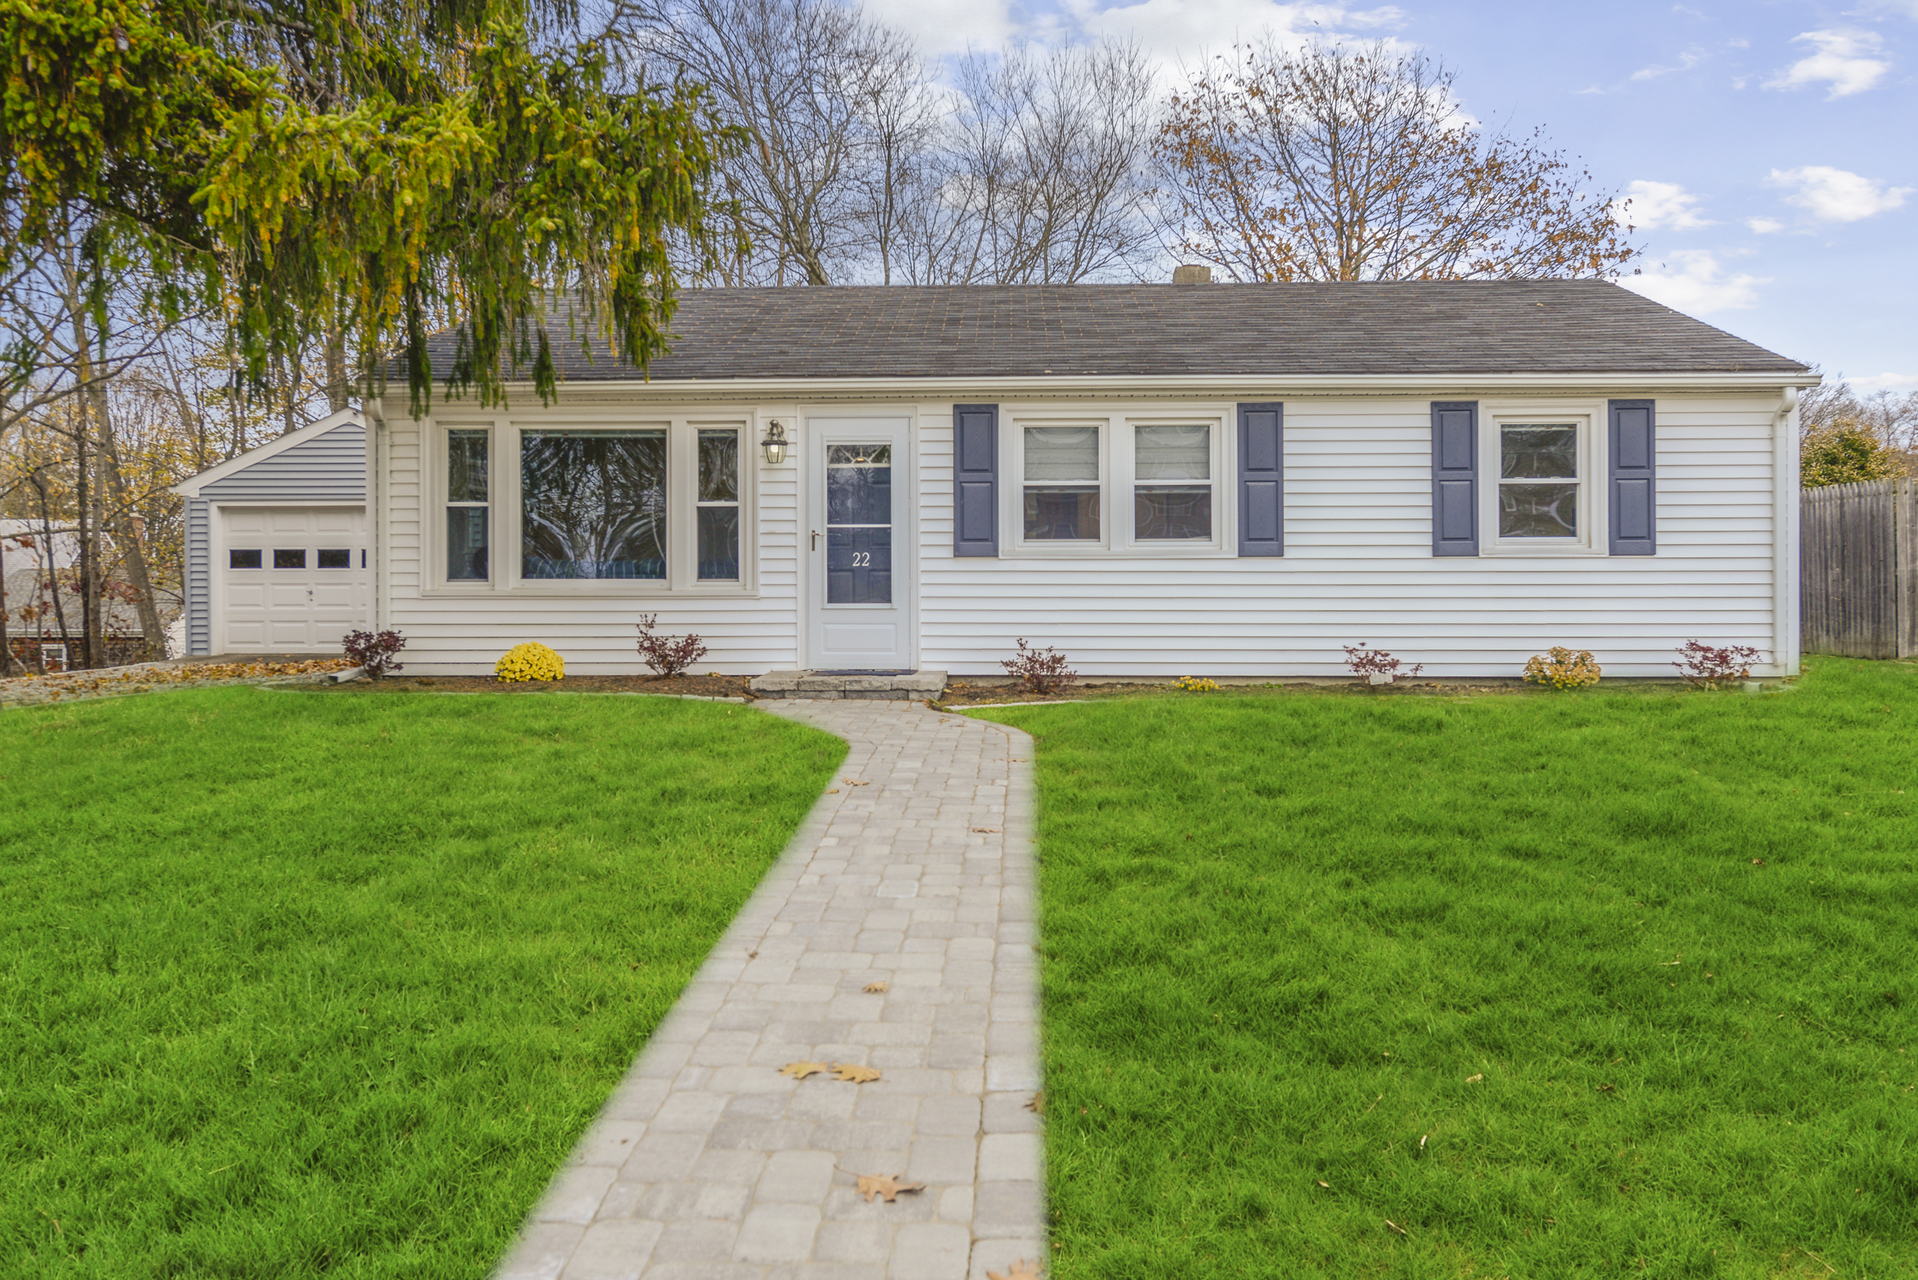 22 Greenway Dr, Bristol, Rhode Island I Sun 11/24 from 11:00-1:00PM